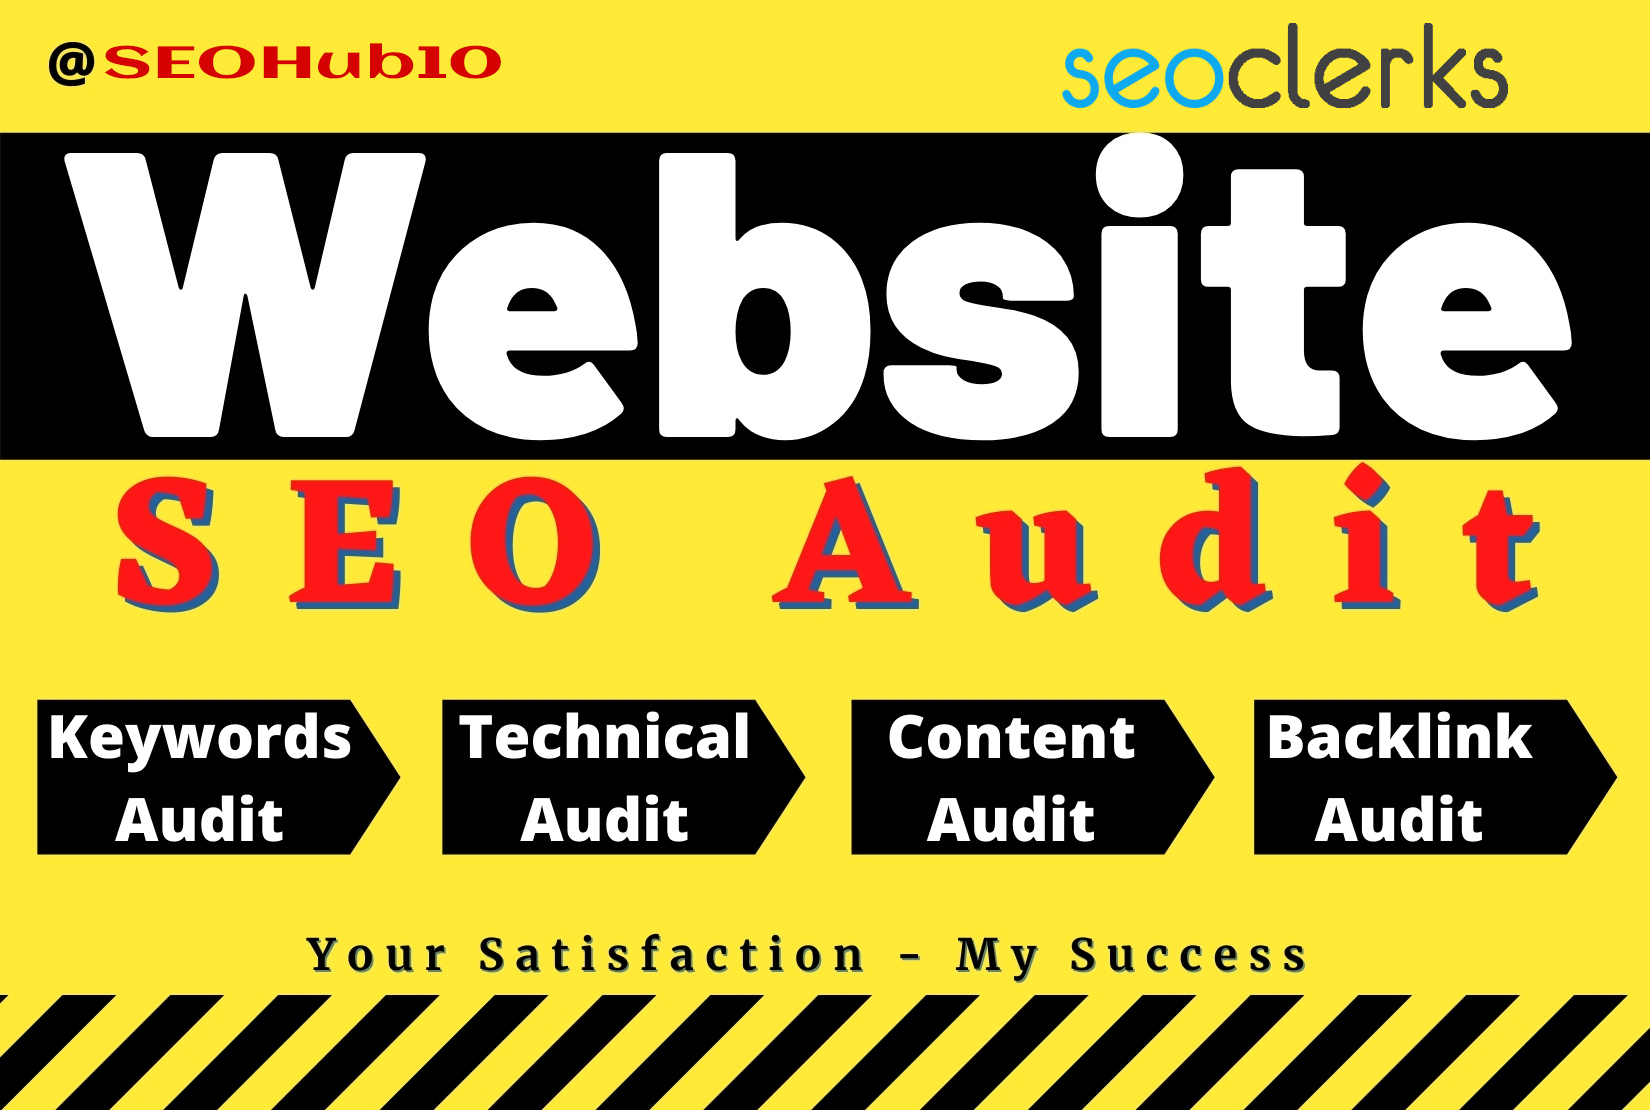 I will do complete website seo audit and provide an expert report